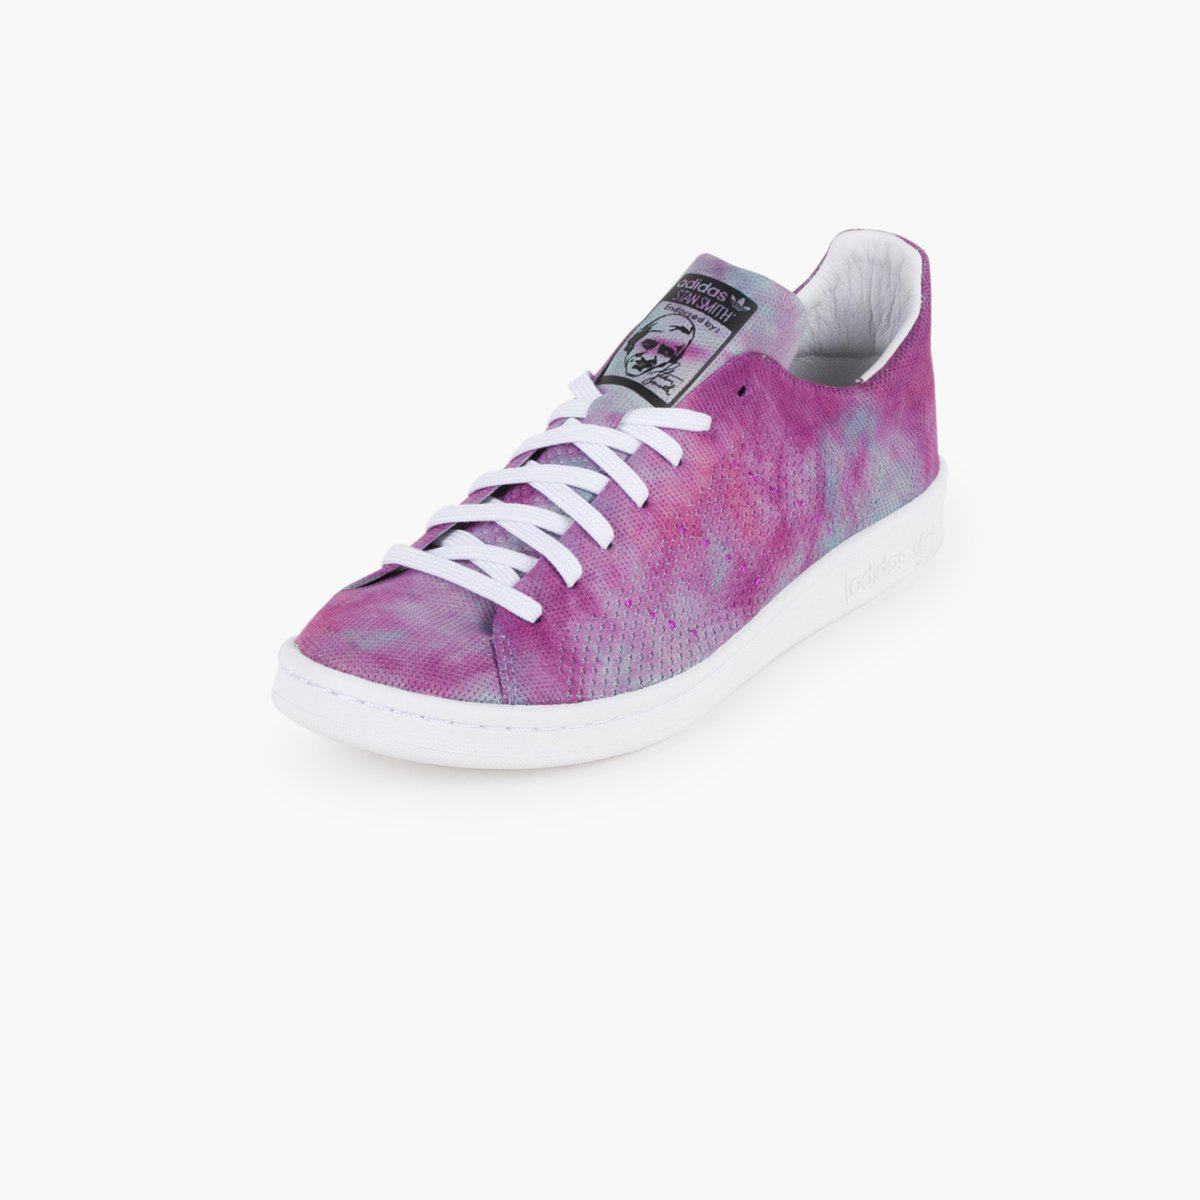 daeb7e8e4050e ... aliexpress adidas originals x pharrell williams hu holi stan smith in  purple lyst 17ab6 21f8b